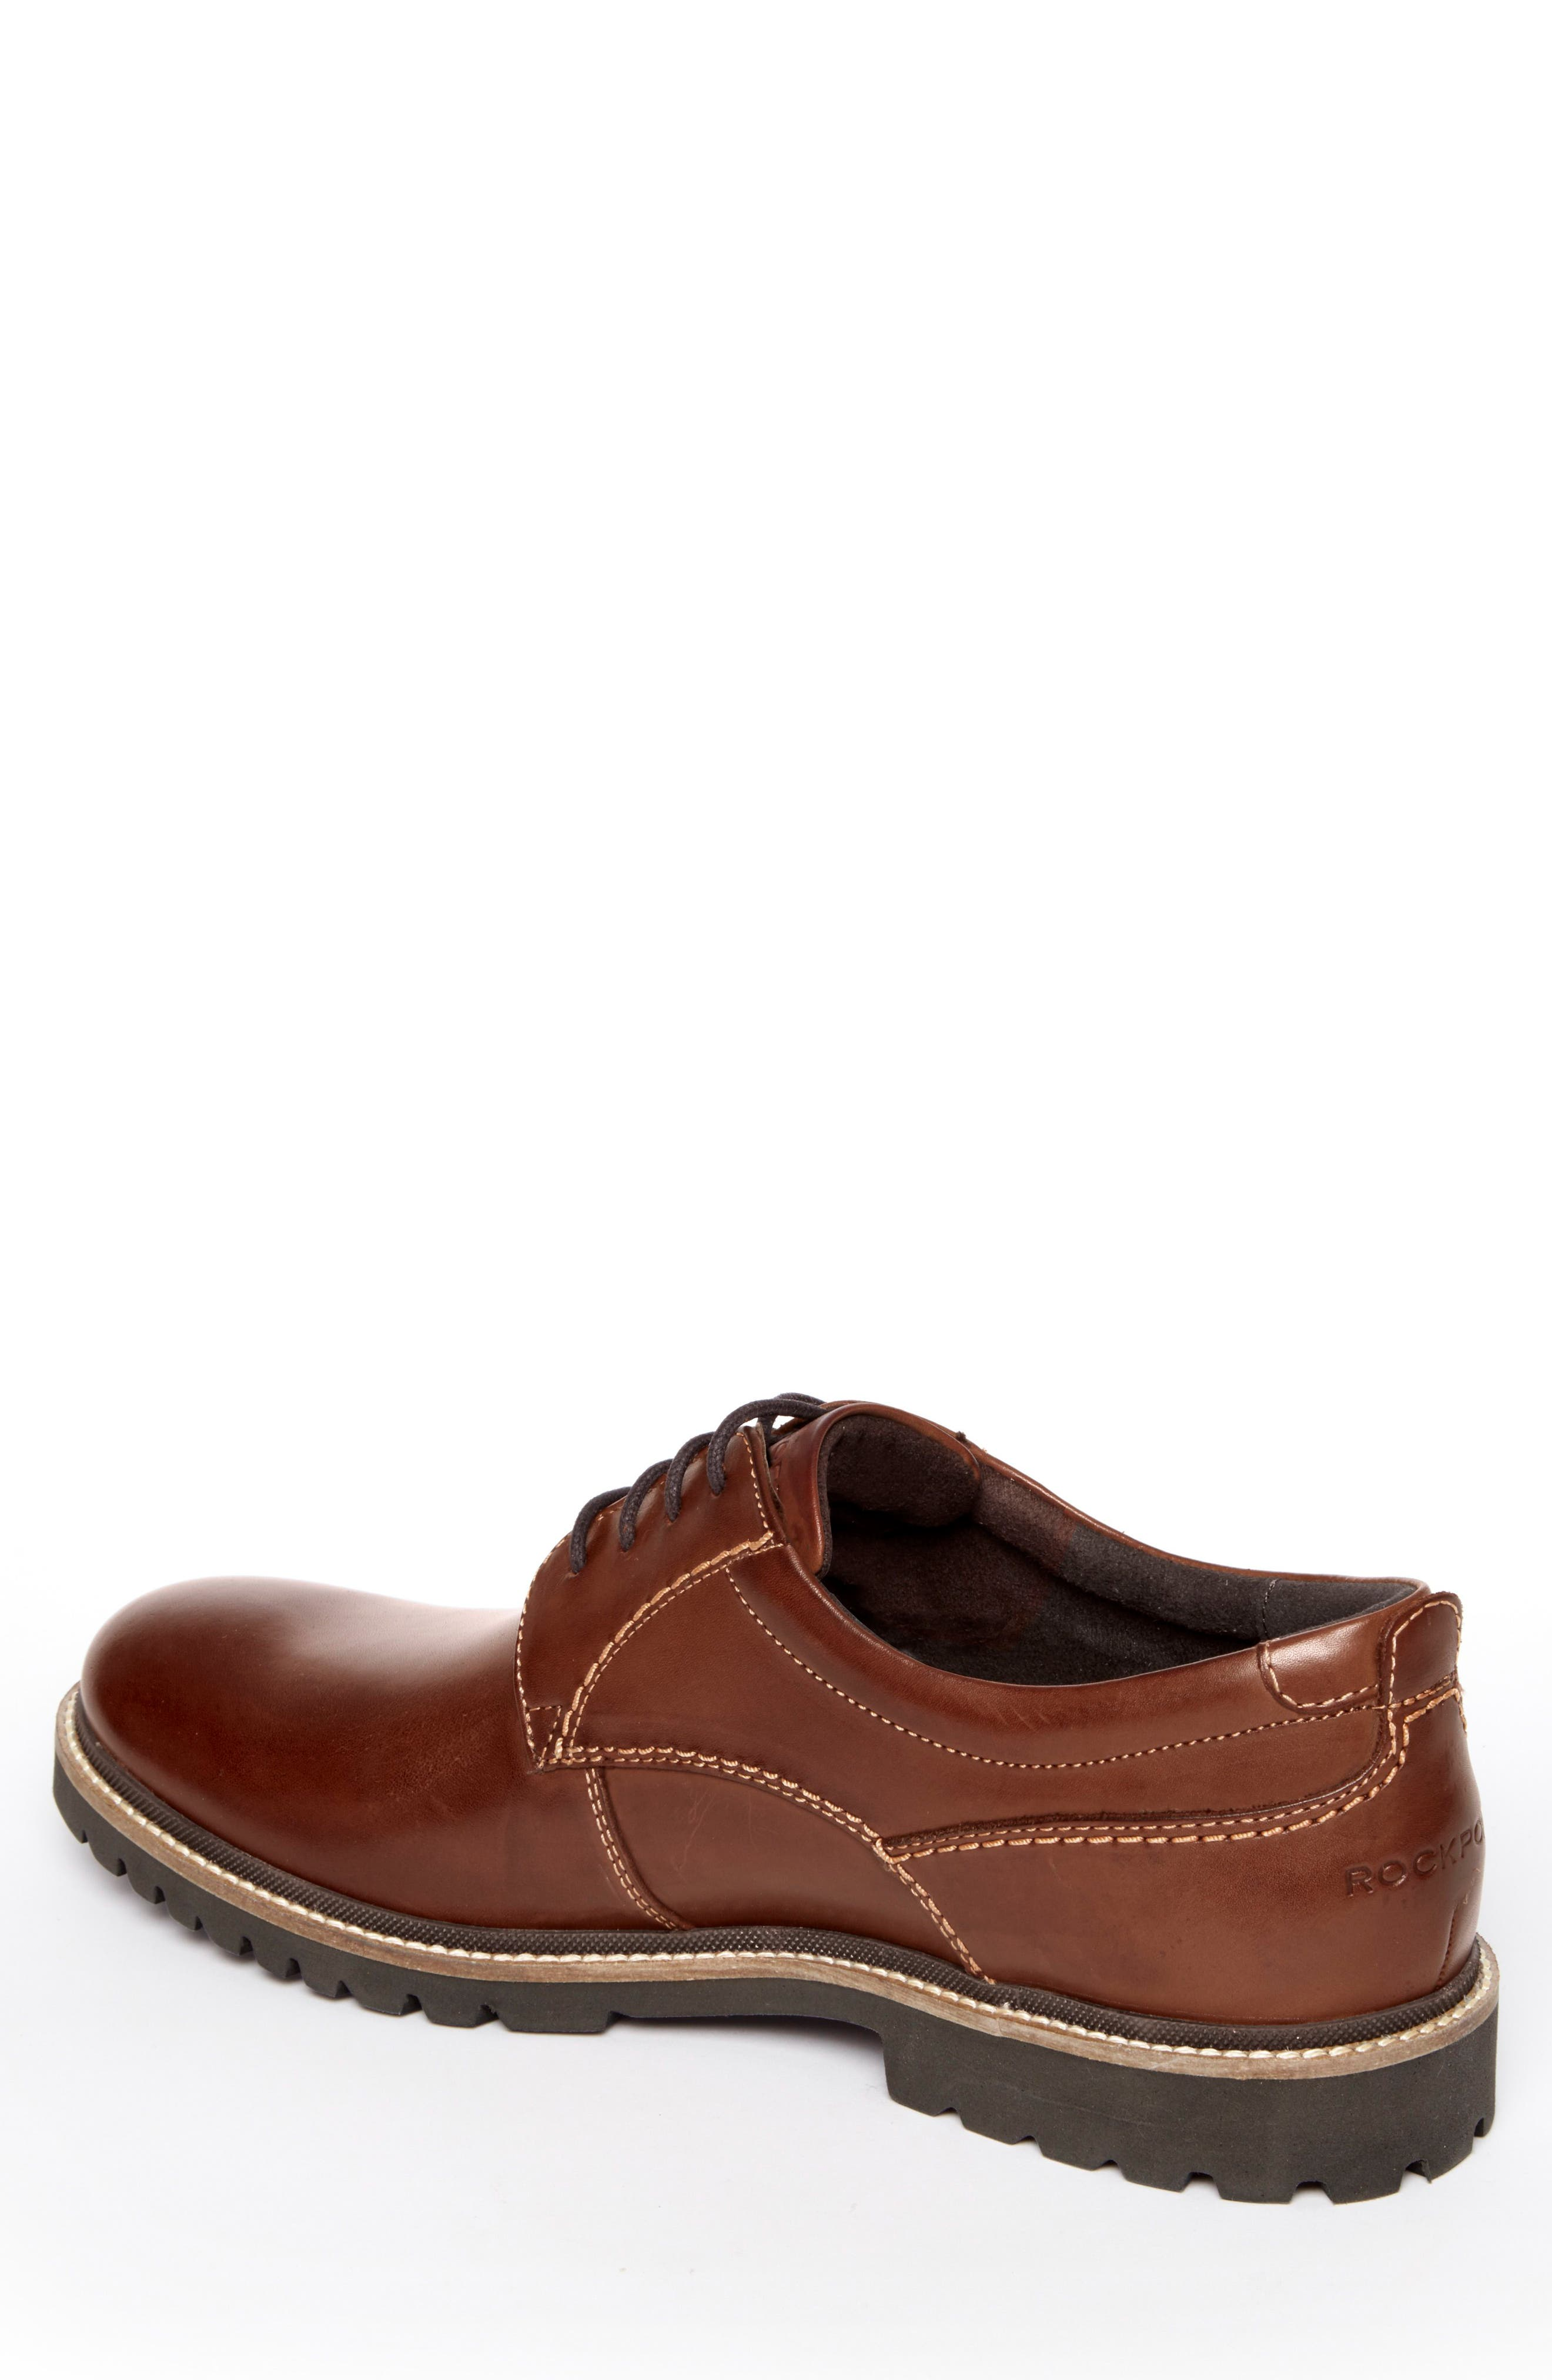 Marshall Buck Shoe,                             Alternate thumbnail 2, color,                             Dark Brown Leather